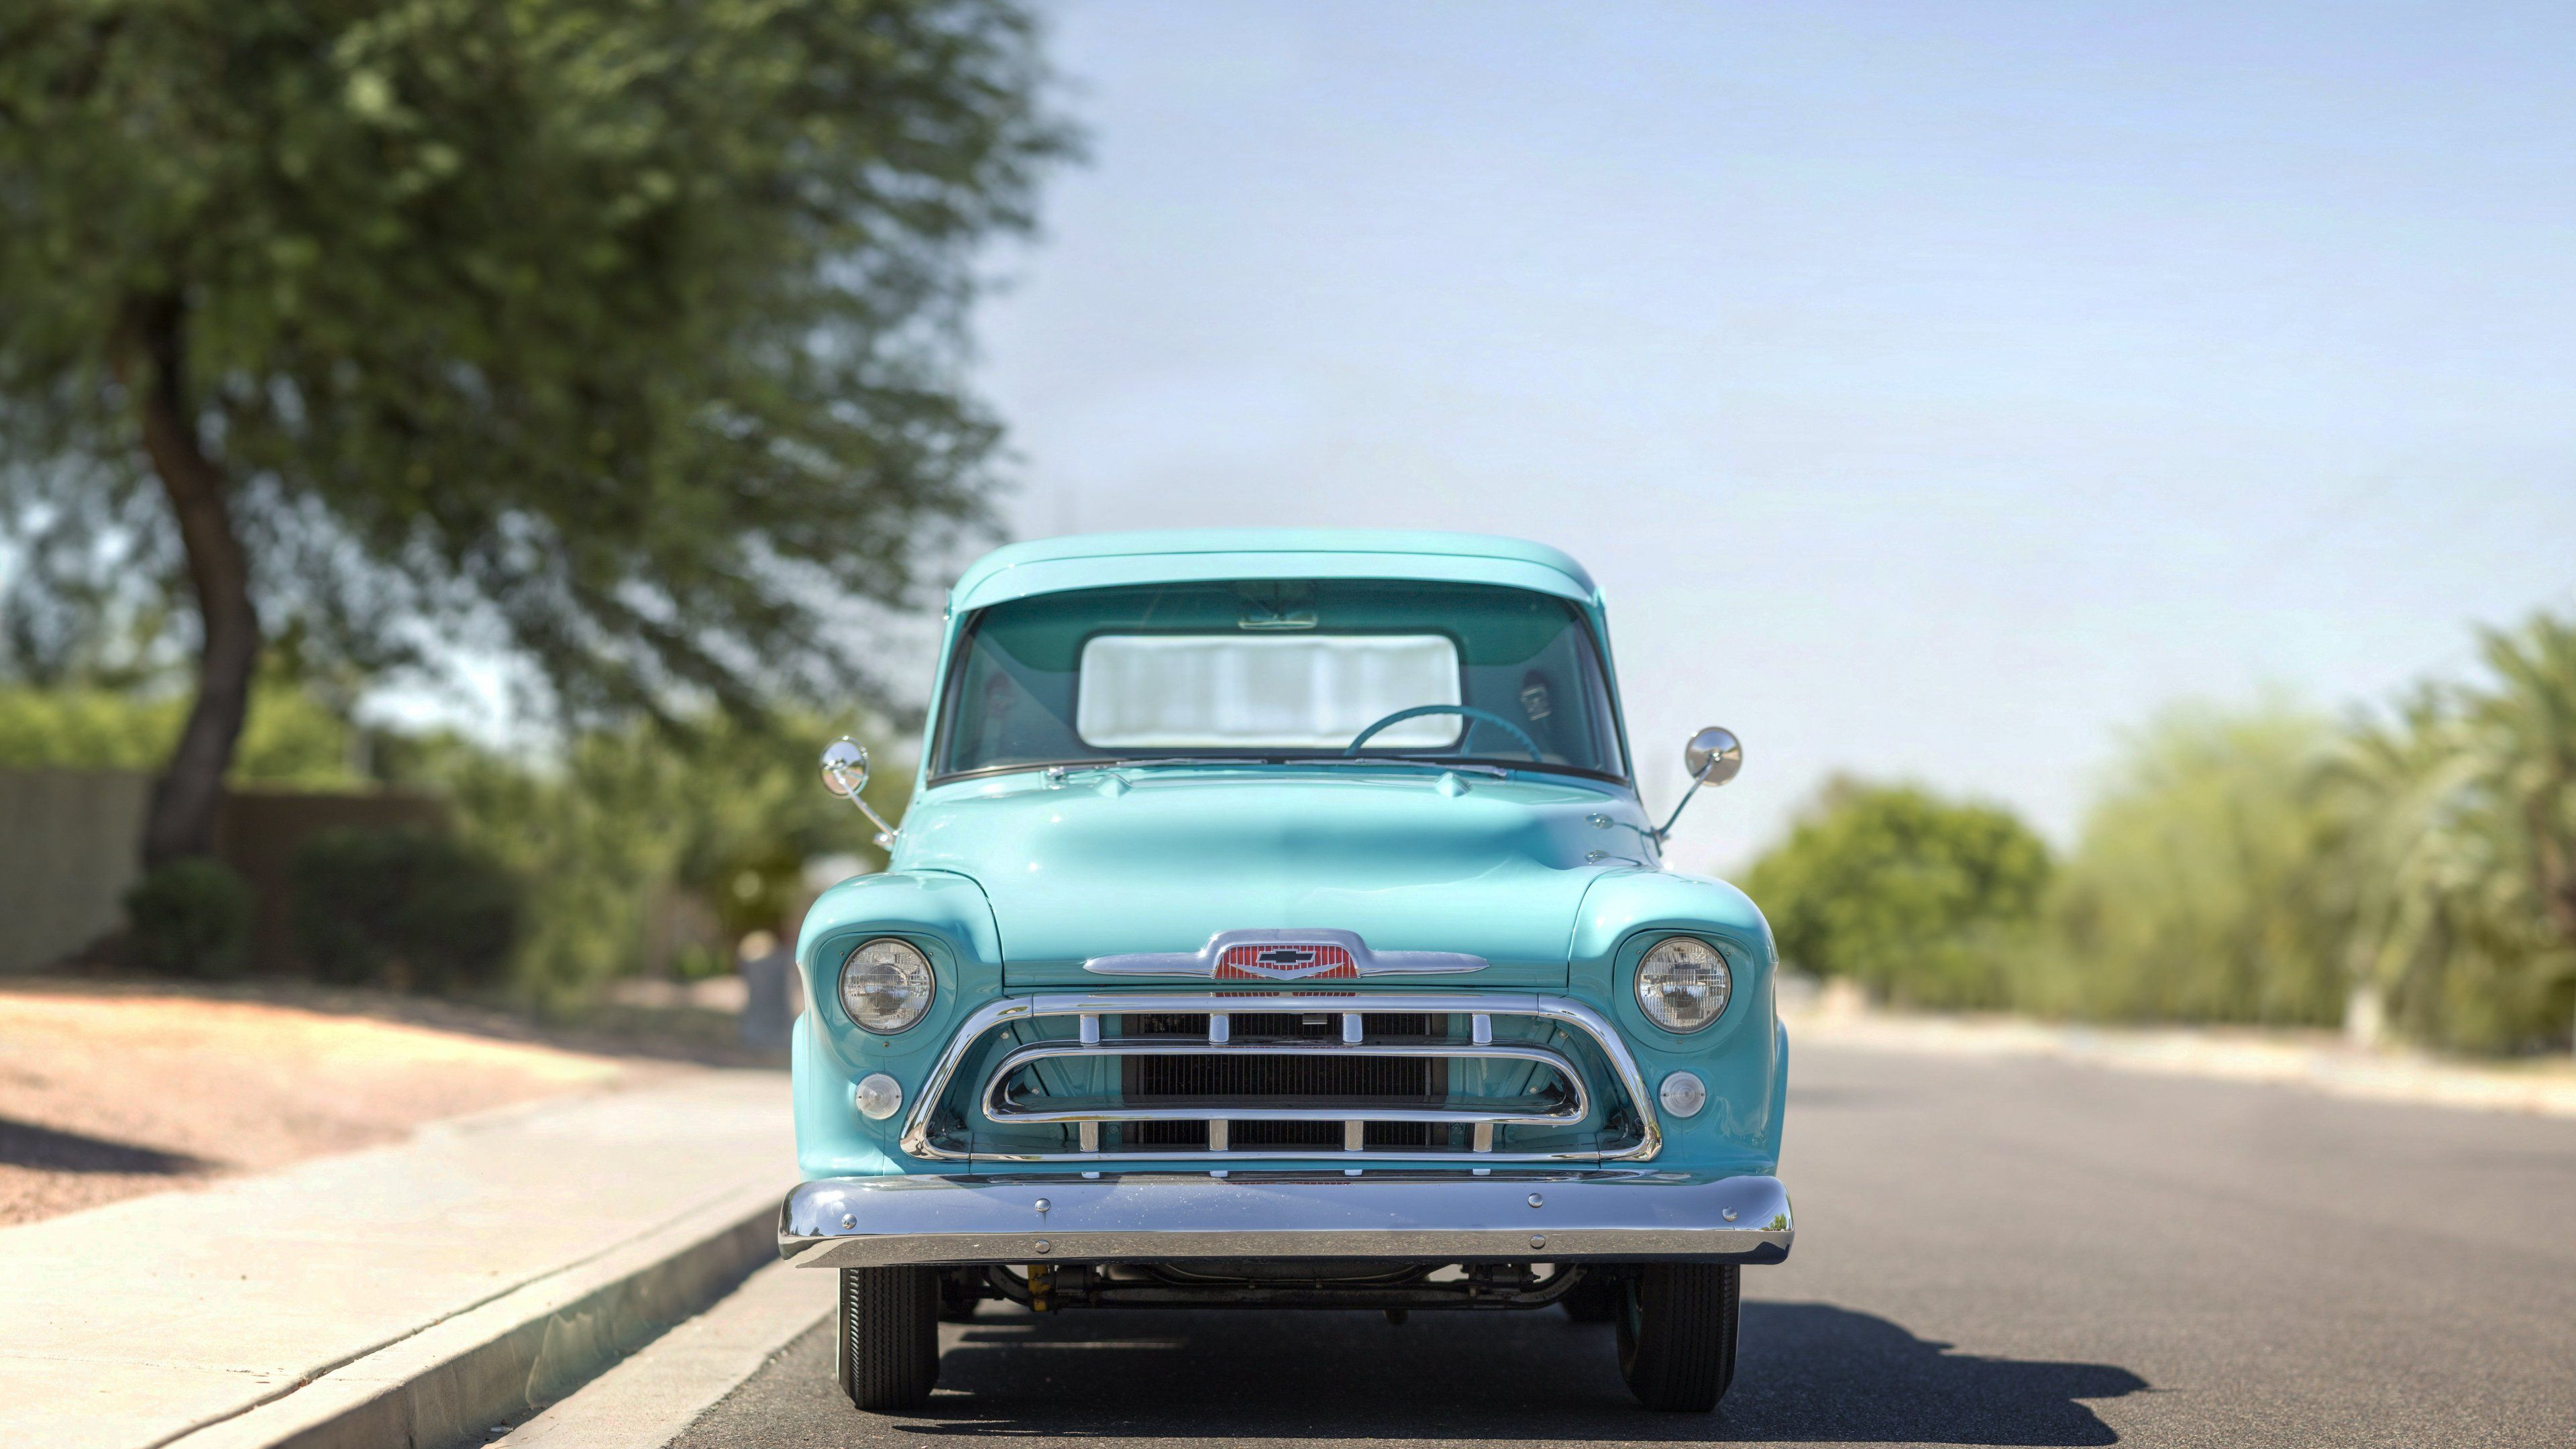 1957 Chevrolet Chevy Classic Old Vintage Car 4k Car Wallpapers